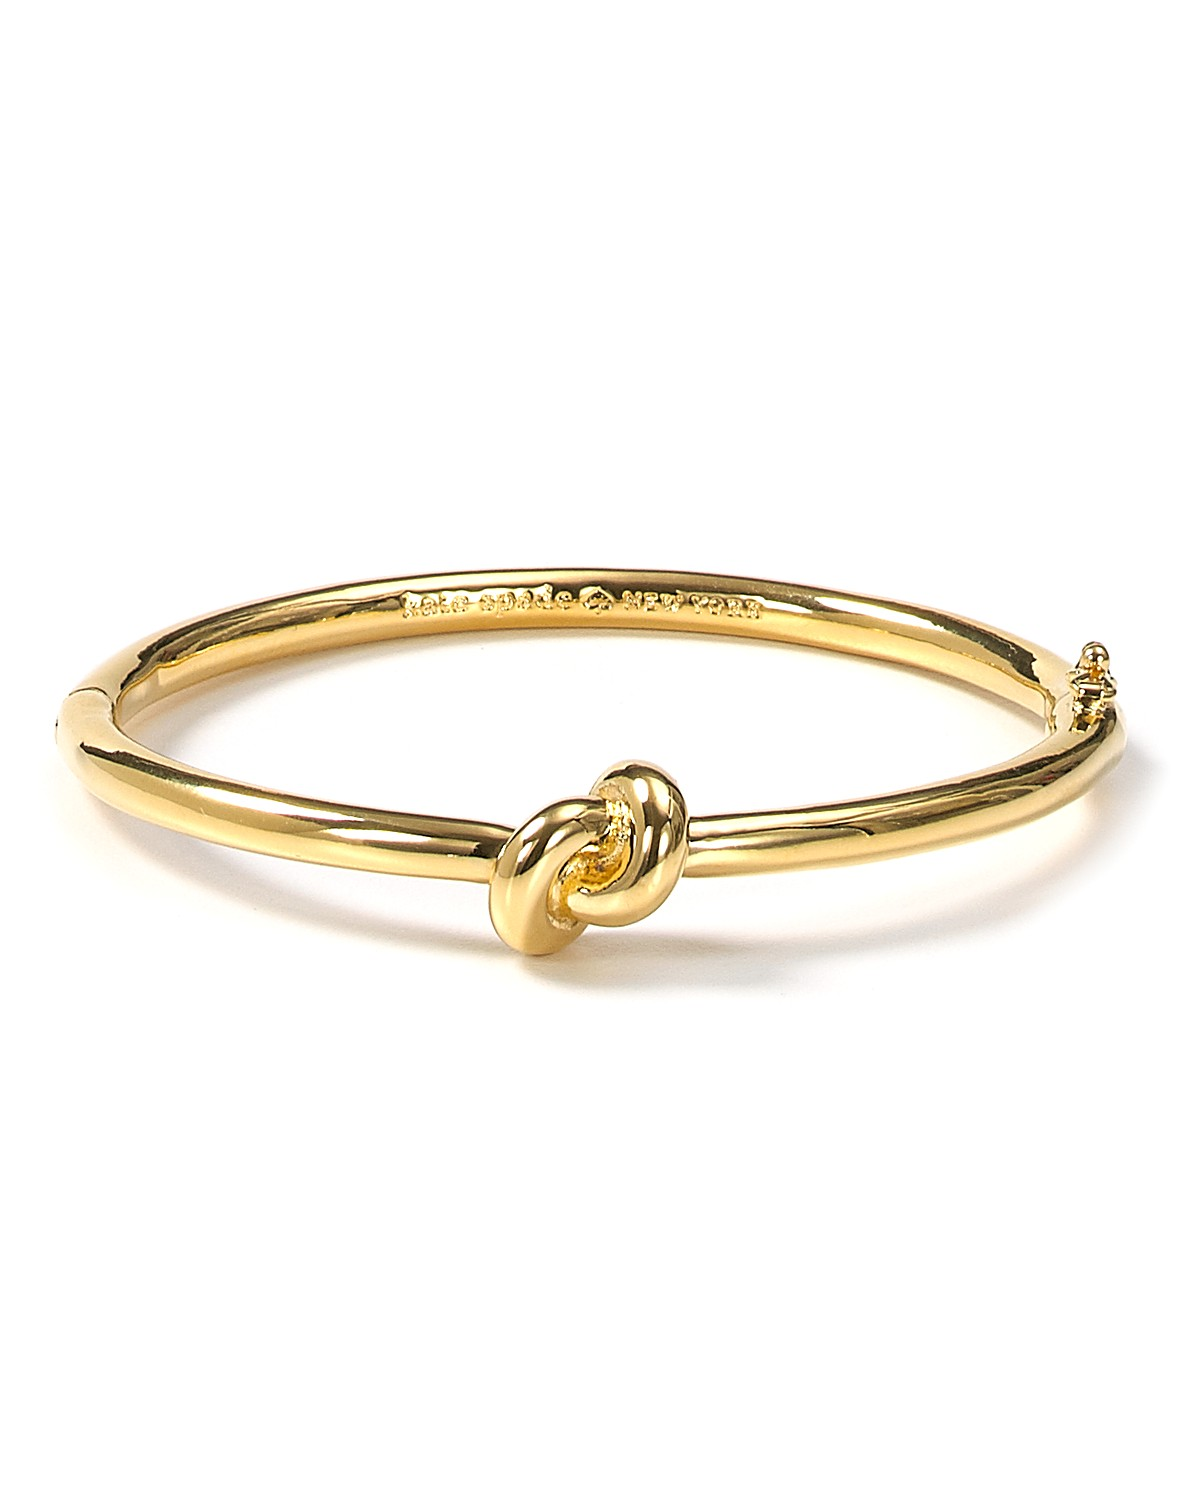 oval shape bangles gold concealed with solid bracelet clasp hinged bangle yellow a